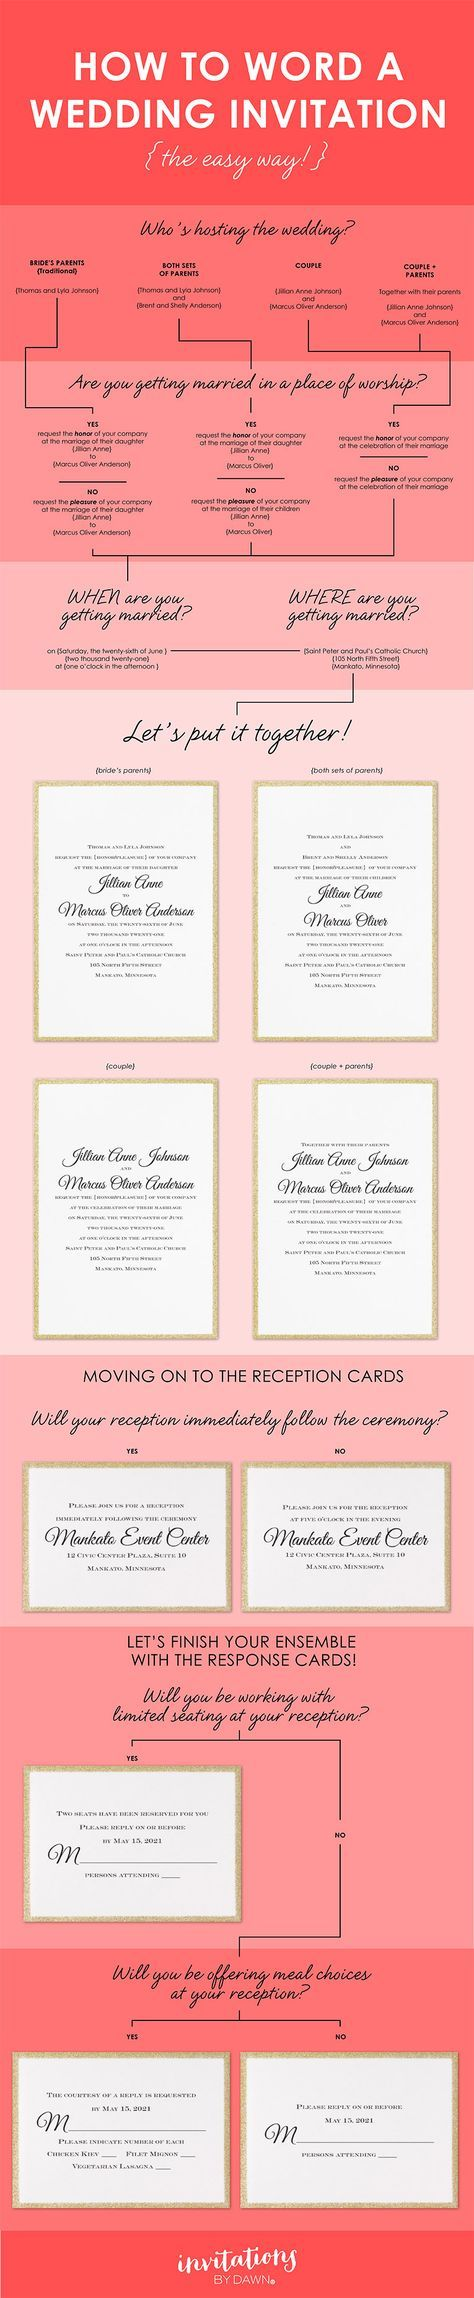 84 best Wedding Ideas images on Pinterest | Weddings, Casamento and ...